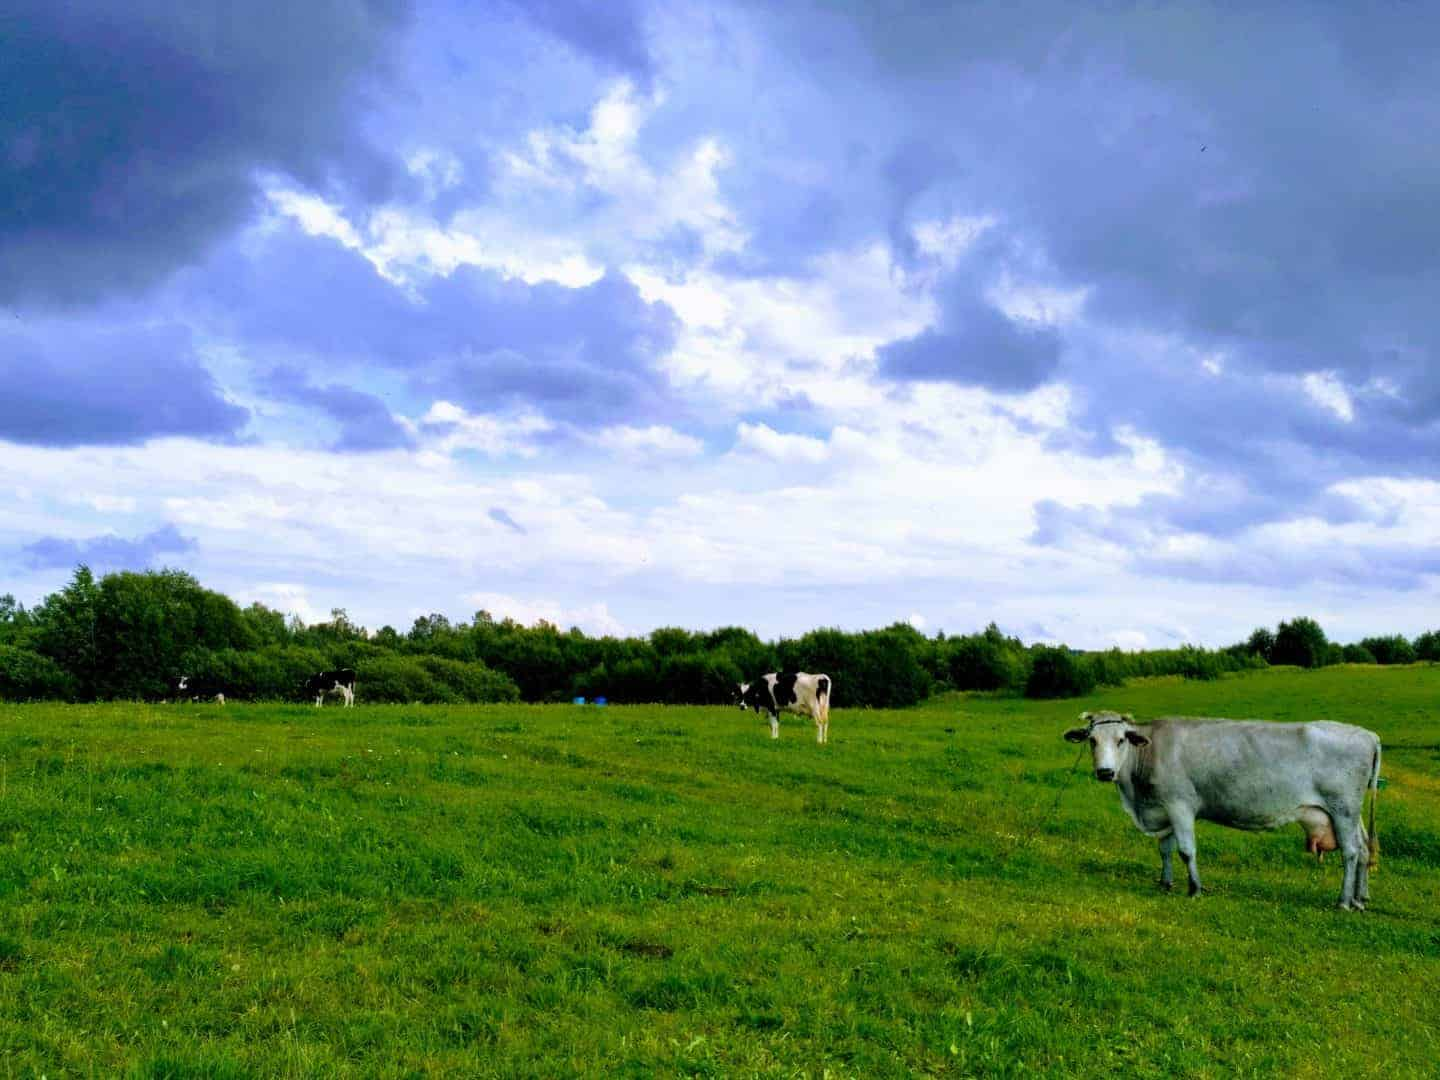 Cows in Lithuania